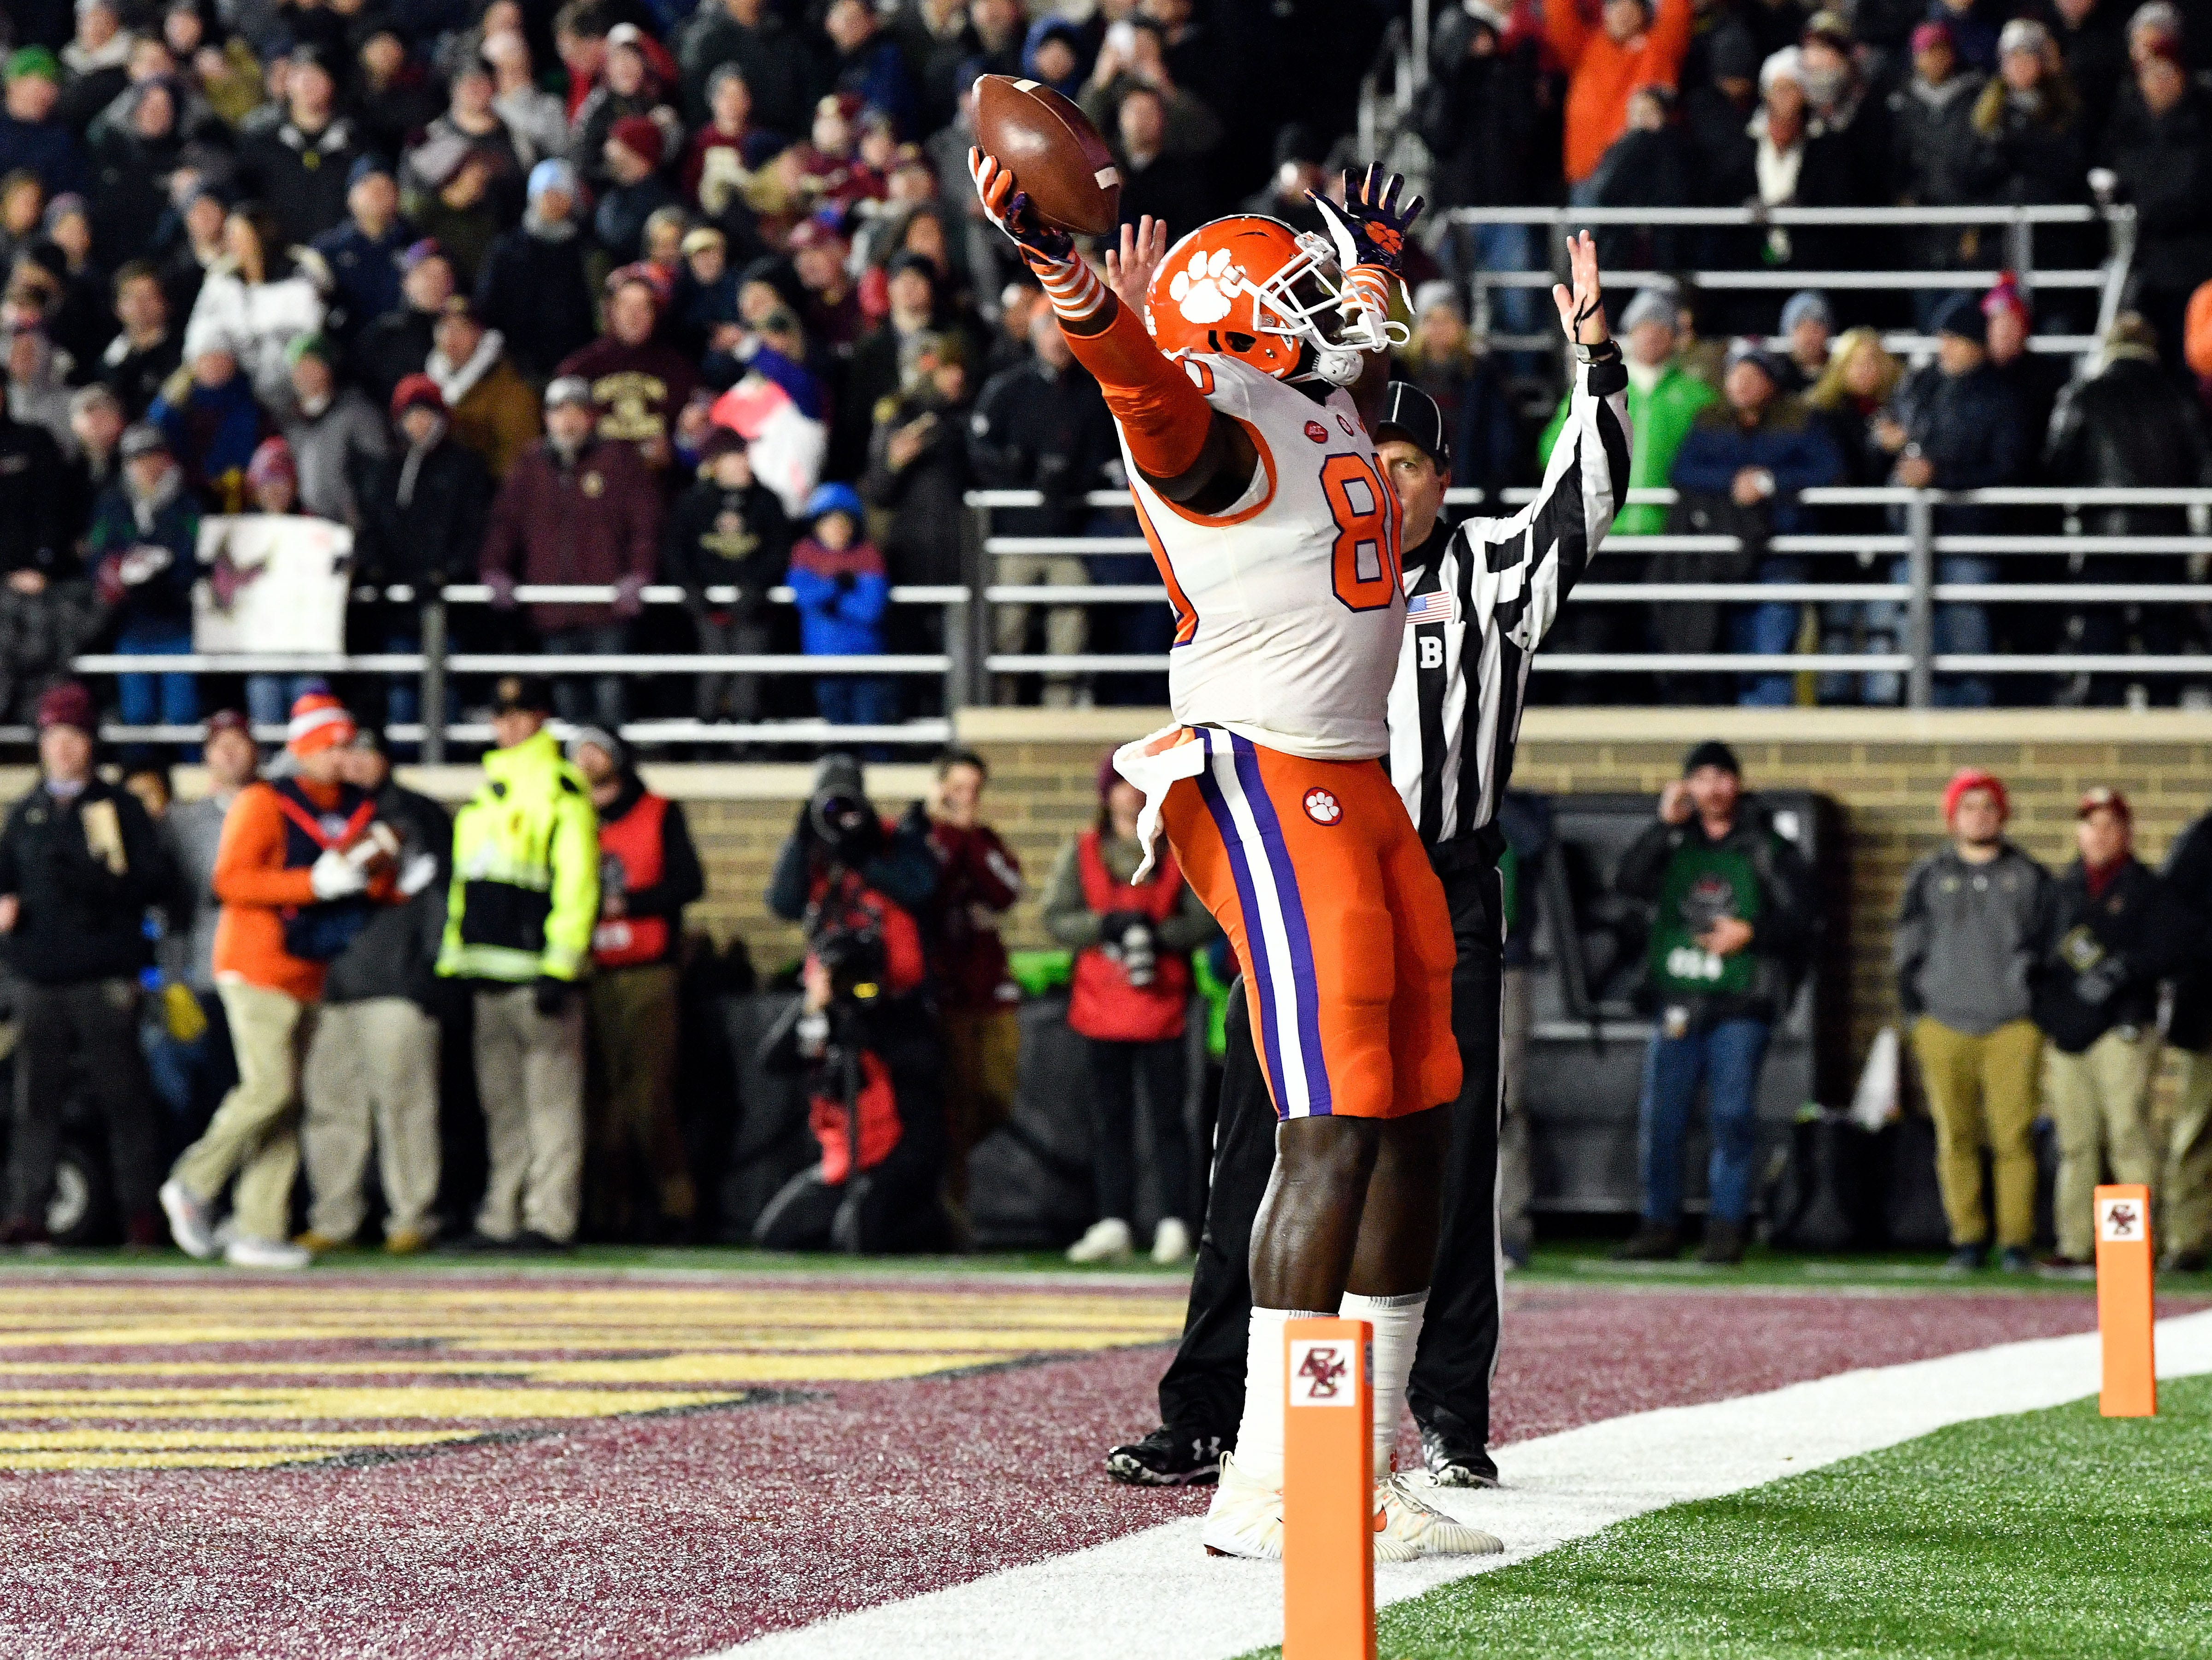 Clemson Tigers tight end Milan Richard (80) celebrates after scoring a touchdown against the Boston College Eagles during the first half at Alumni Stadium.